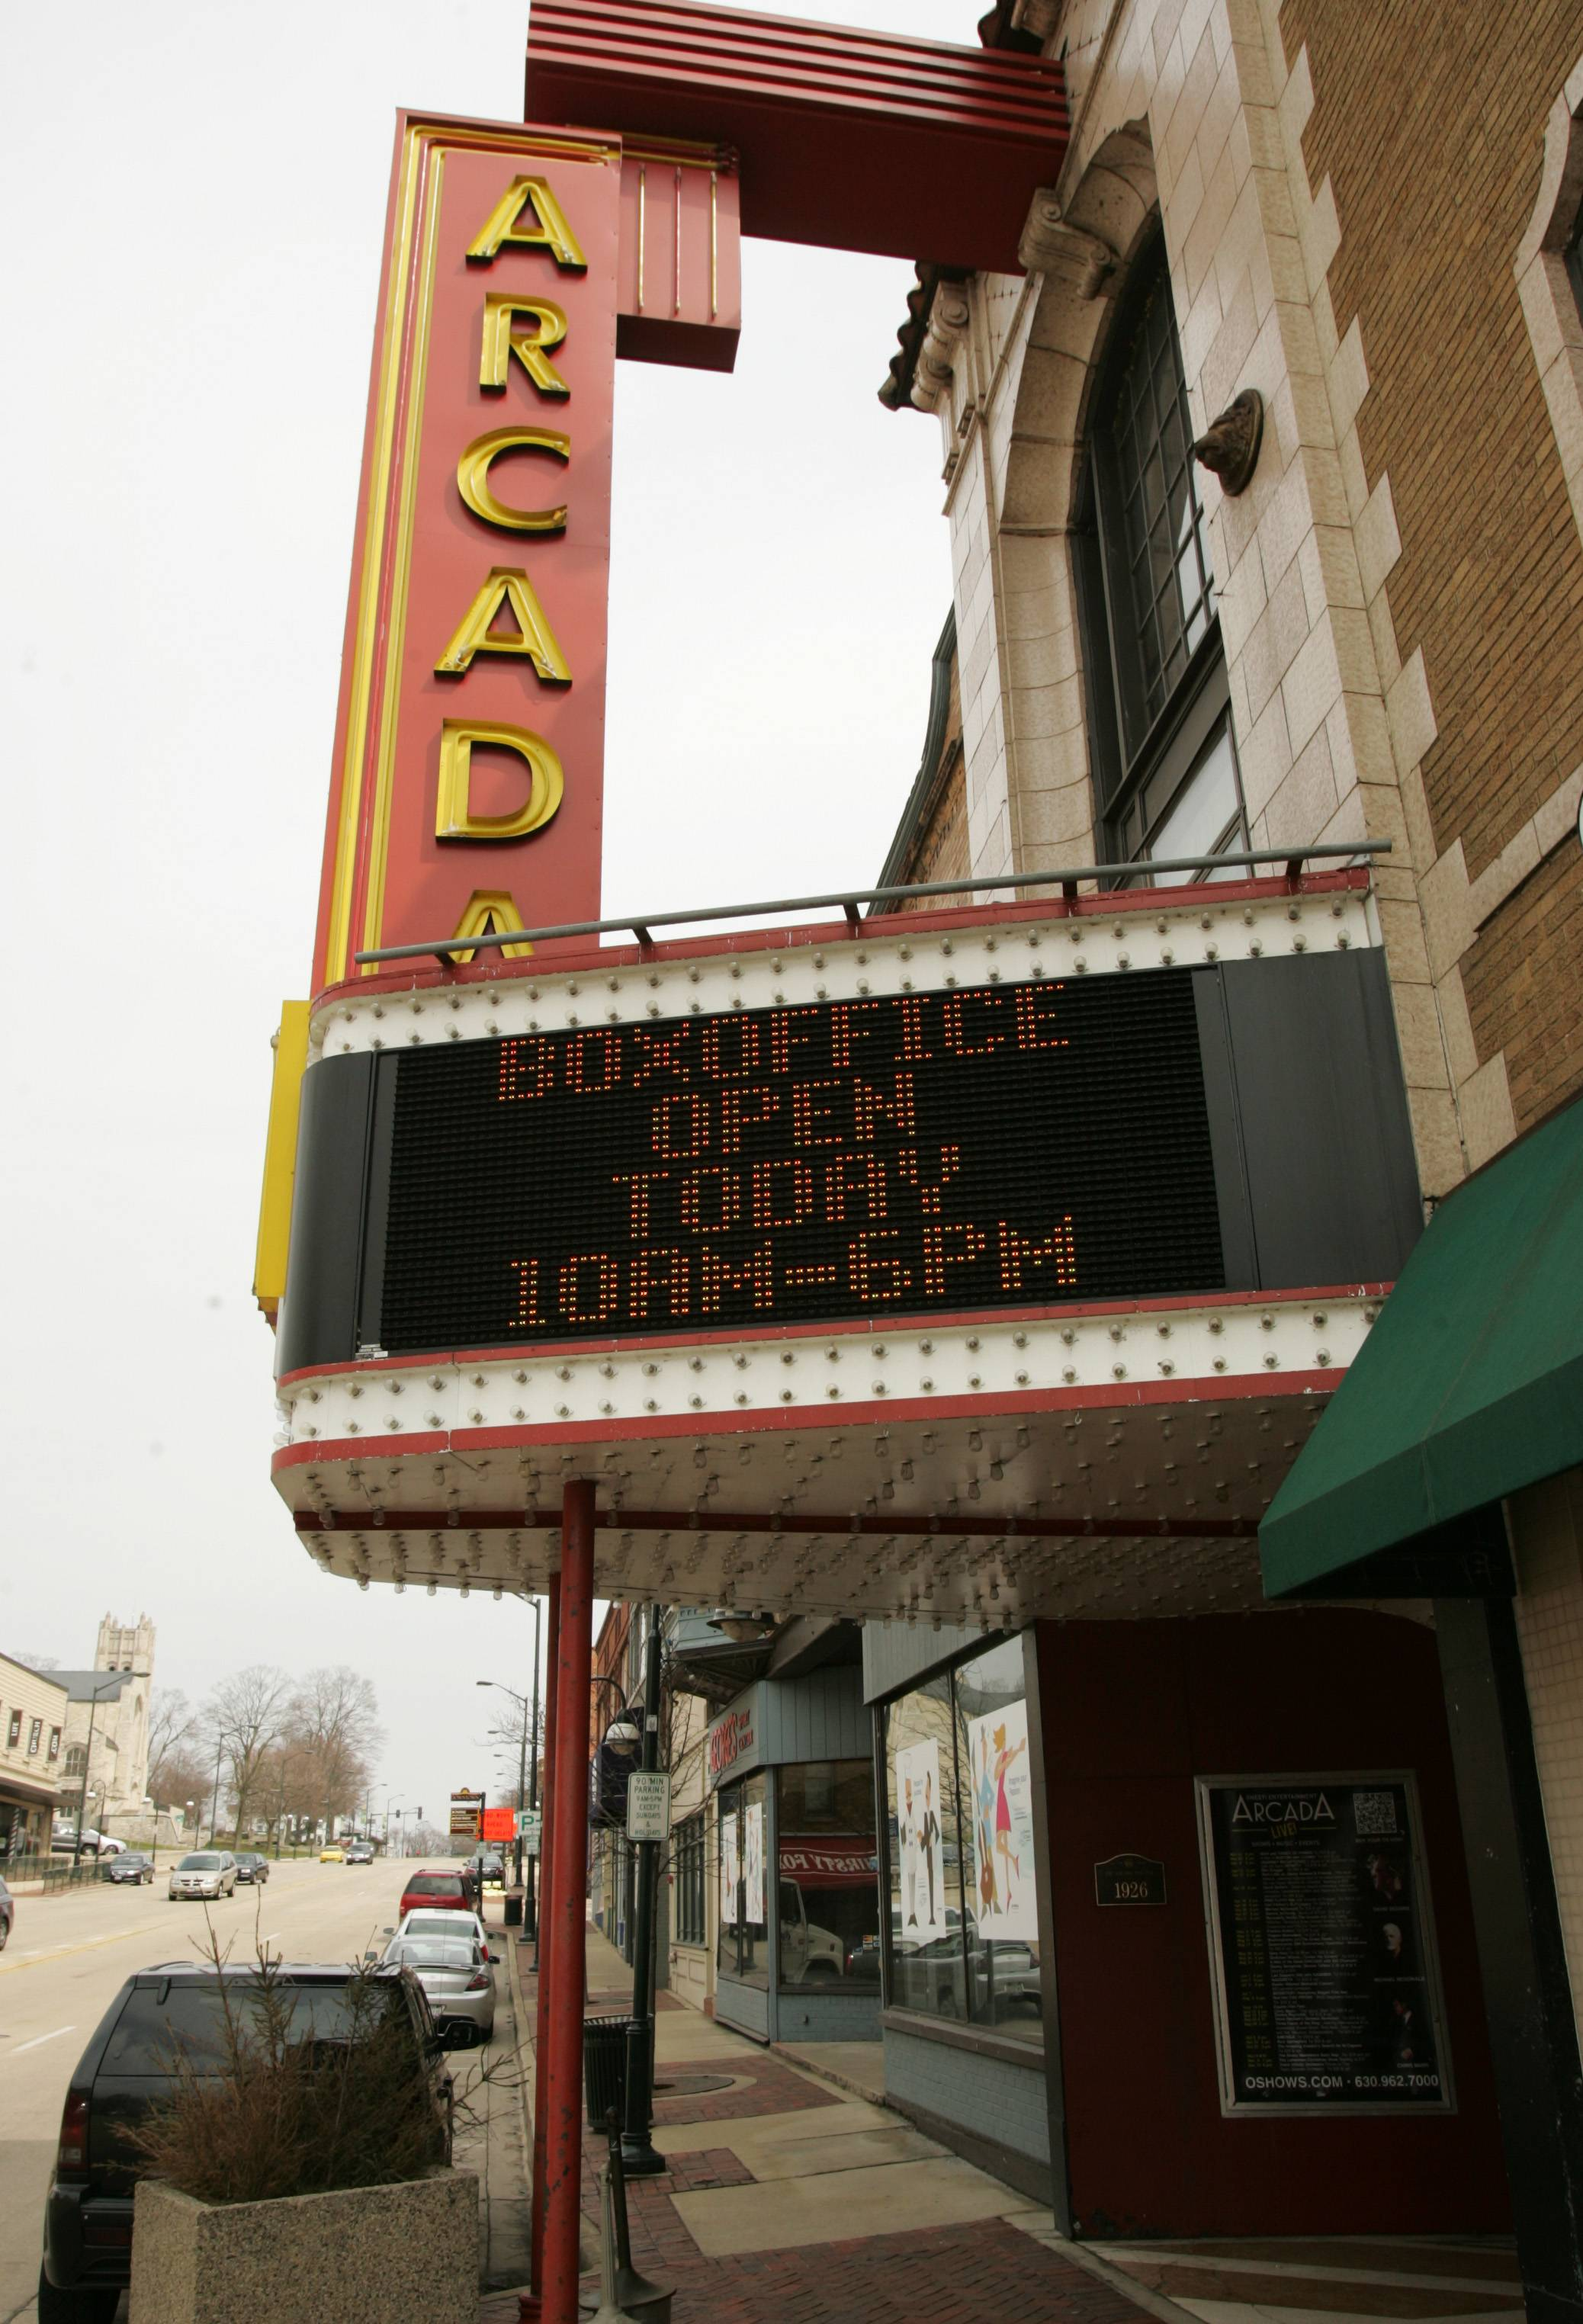 Arcada Theatre expected to remain open during more safety upgrades